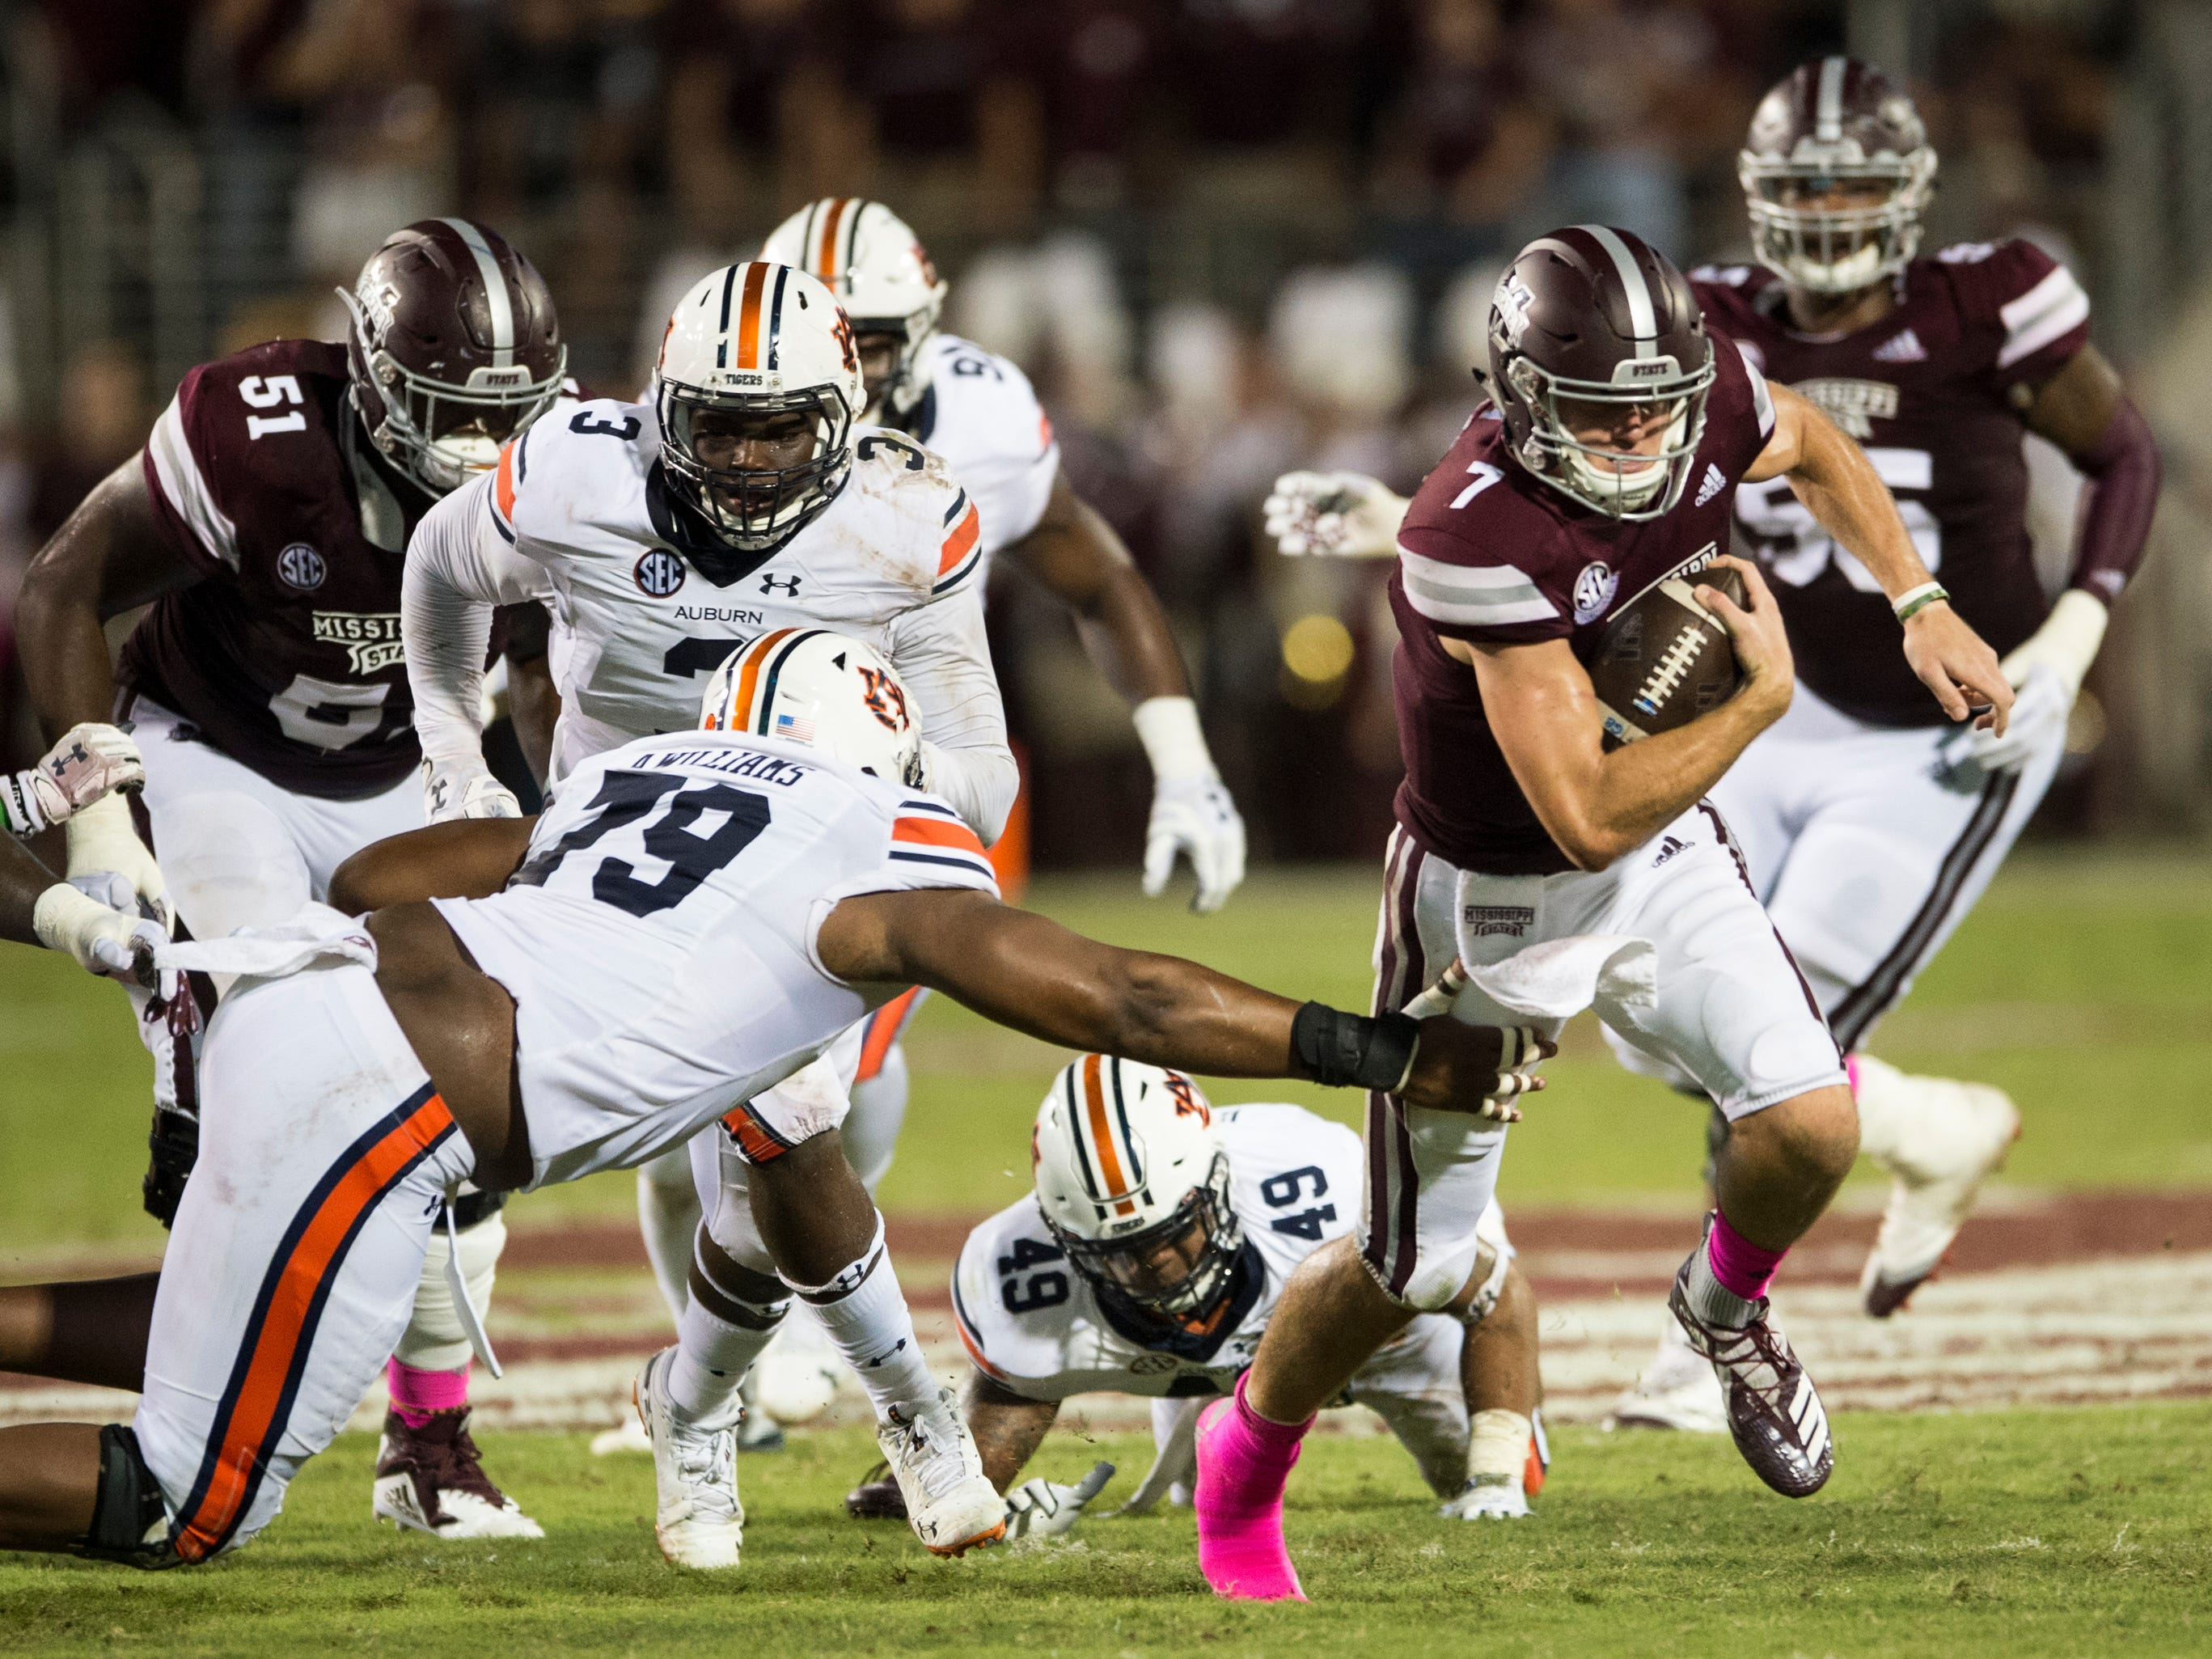 Mississippi State's Nick Fitzgerald (7) runs the ball against  Auburn at Davis Wade Stadium in Starkville, Miss., on Saturday, Oct. 6, 2018. Mississippi State leads Auburn 13-3 at halftime.